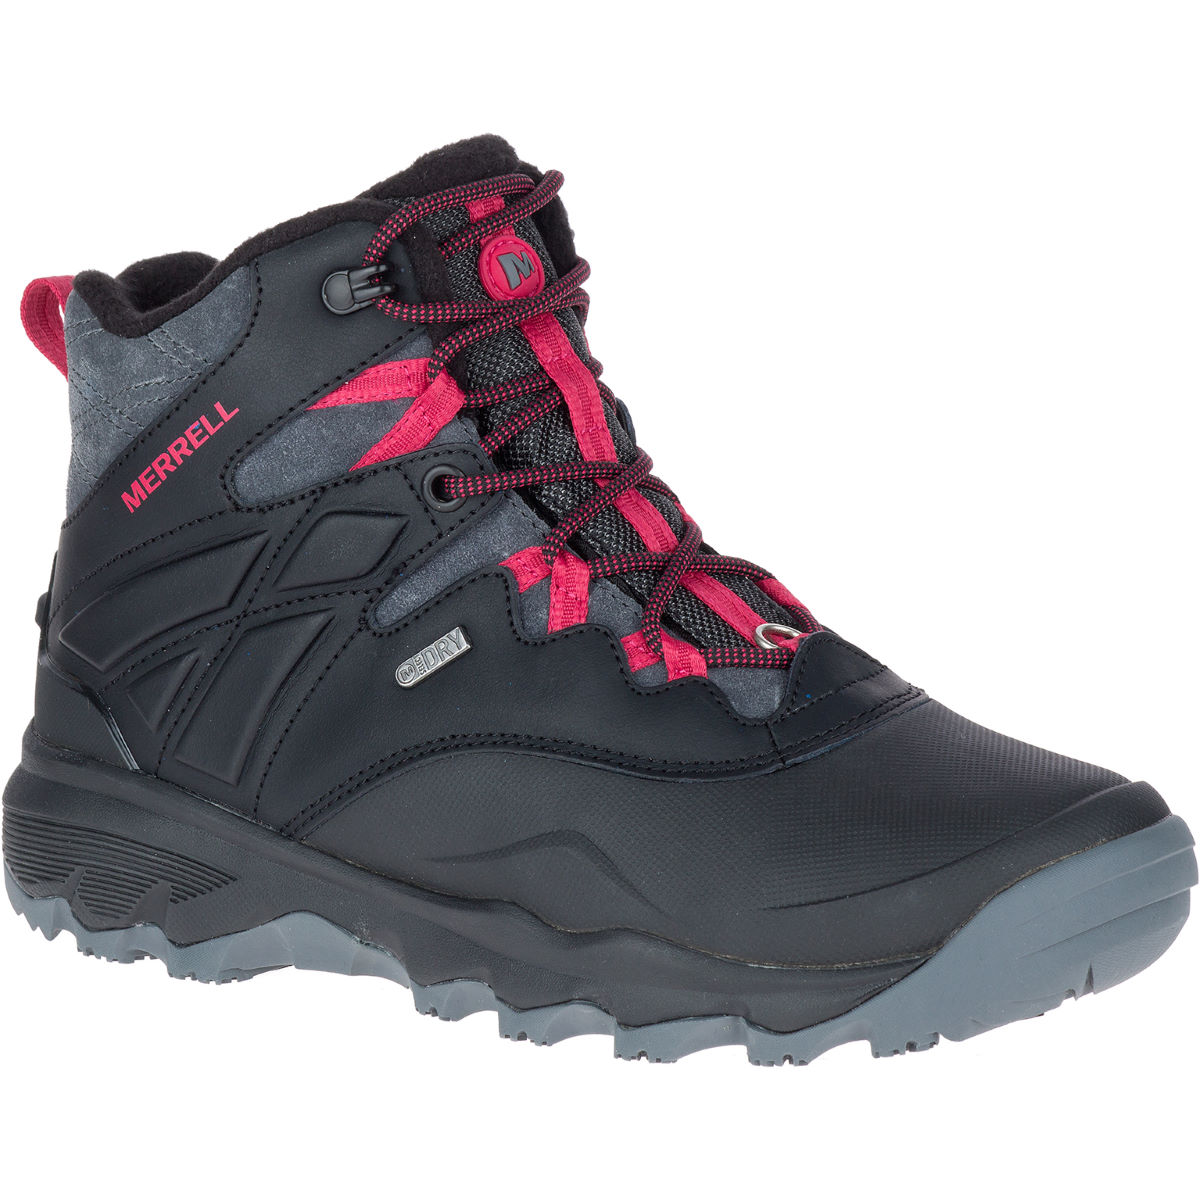 "Merrell Merrell womens Thermo Adventure Ice+ 6"" Waterproof Boots   Boots"